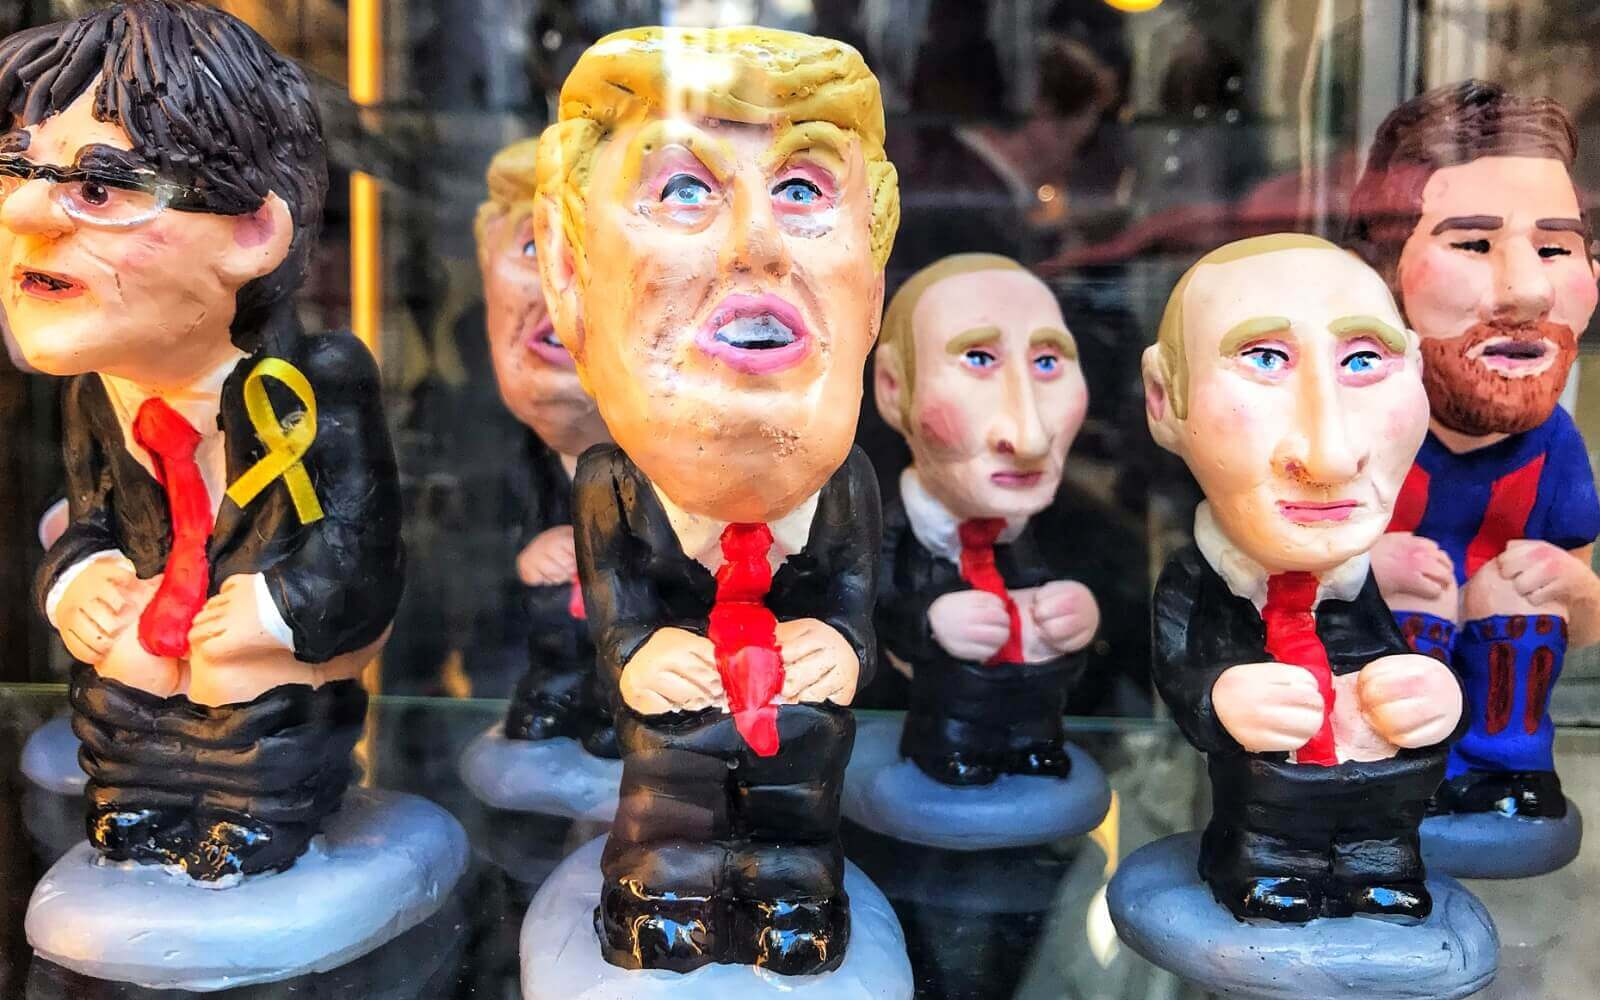 traditional barcelona souvenir caganer with trump, putin, messi, and puigmont